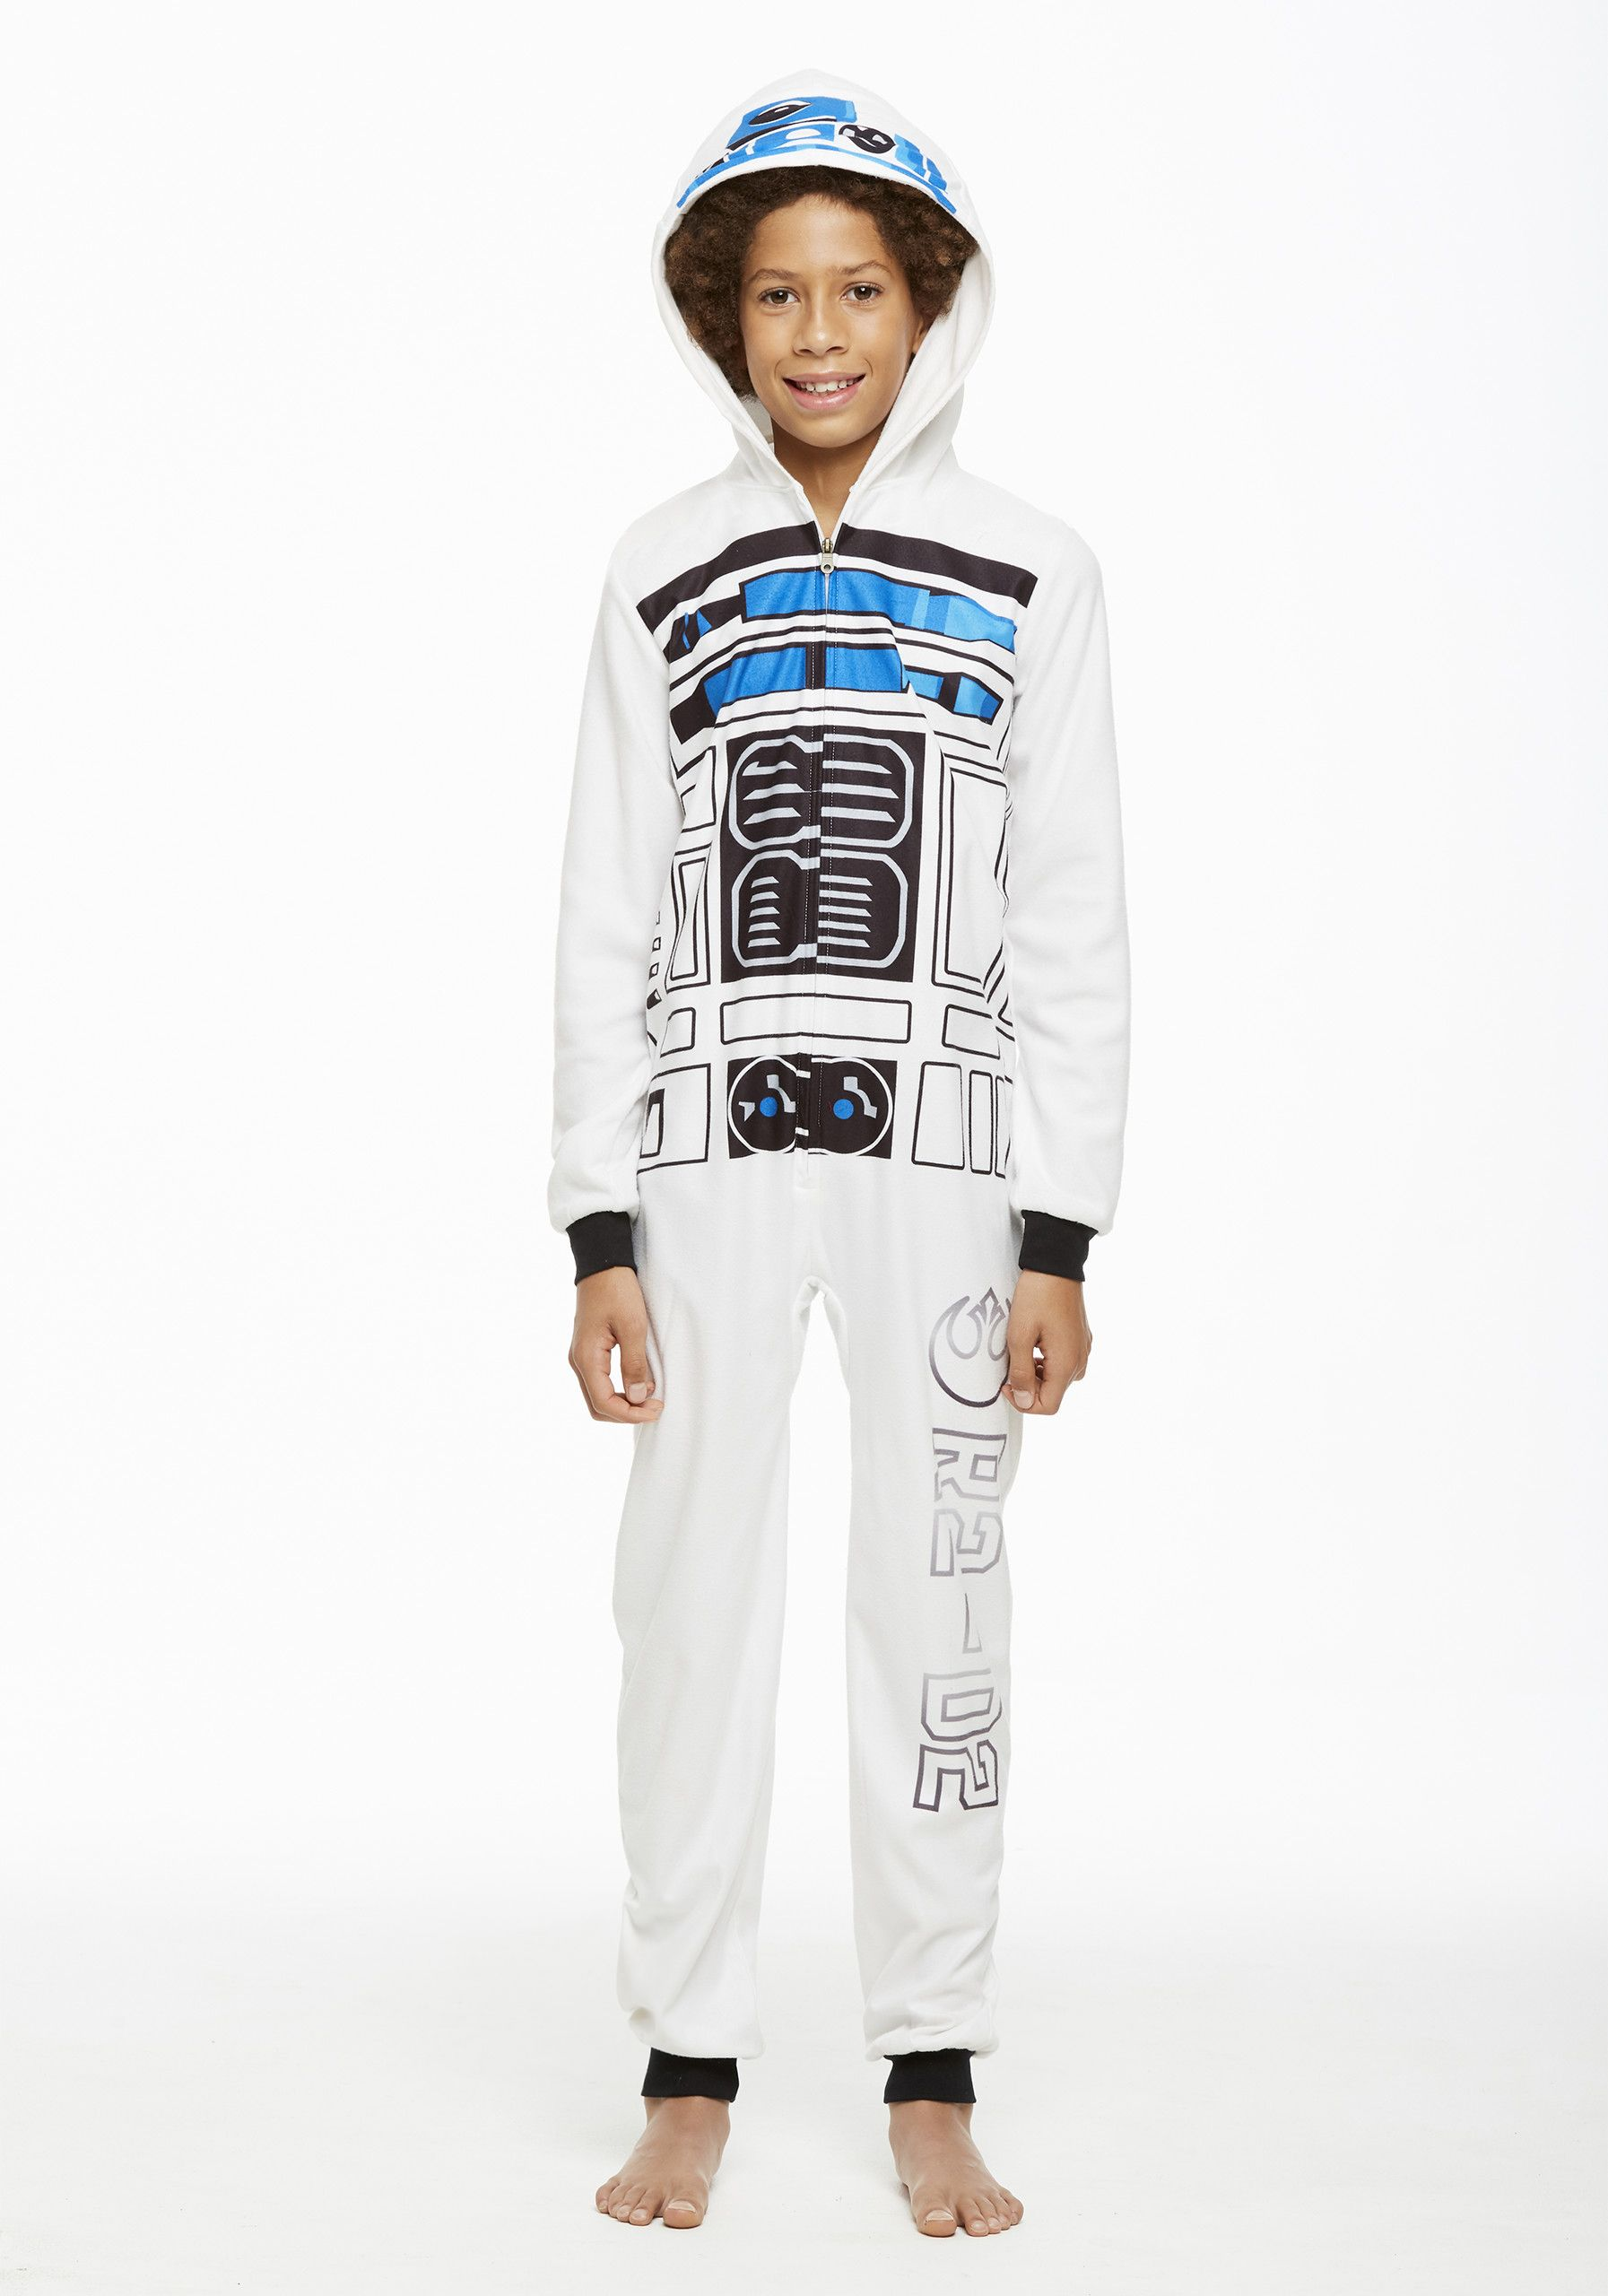 Jammin  Jammies Pajamas Unisex Kids Star Wars R2D2 Onesie With Pillow Case.  Size XS dde324fec